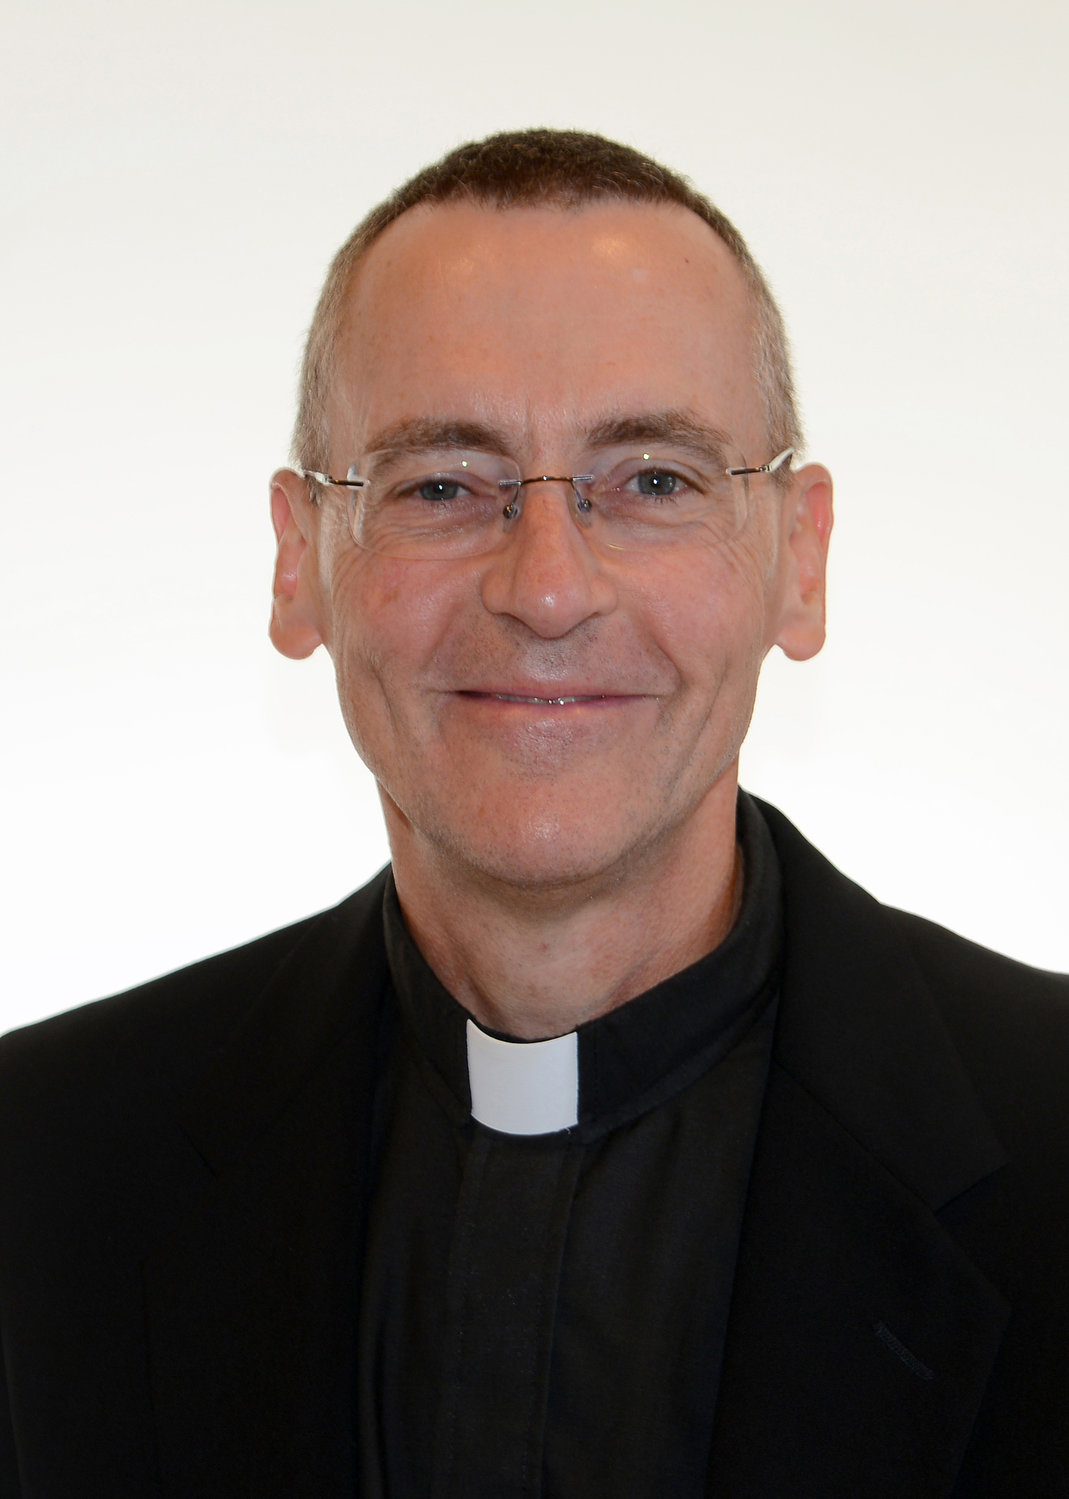 Pope Francis has named Father William J. Muhm as an auxiliary bishop of the Archdiocese for the Military Services, USA.